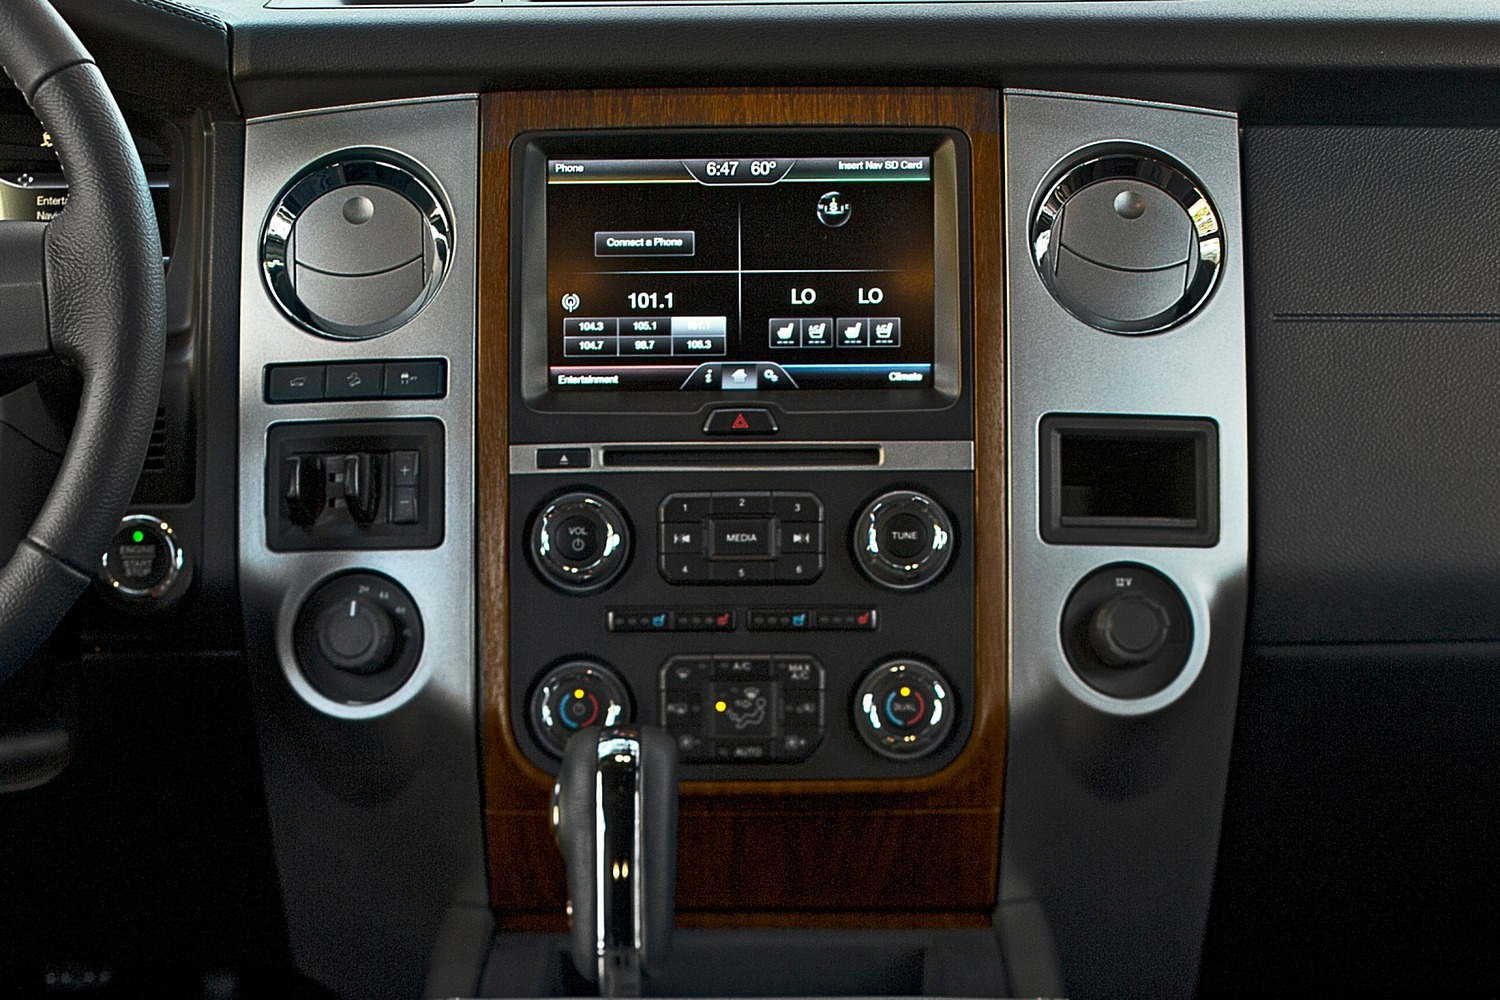 Ford Expedition King Ranch 4dr SUV Center Console Shown (2015 model year shown)